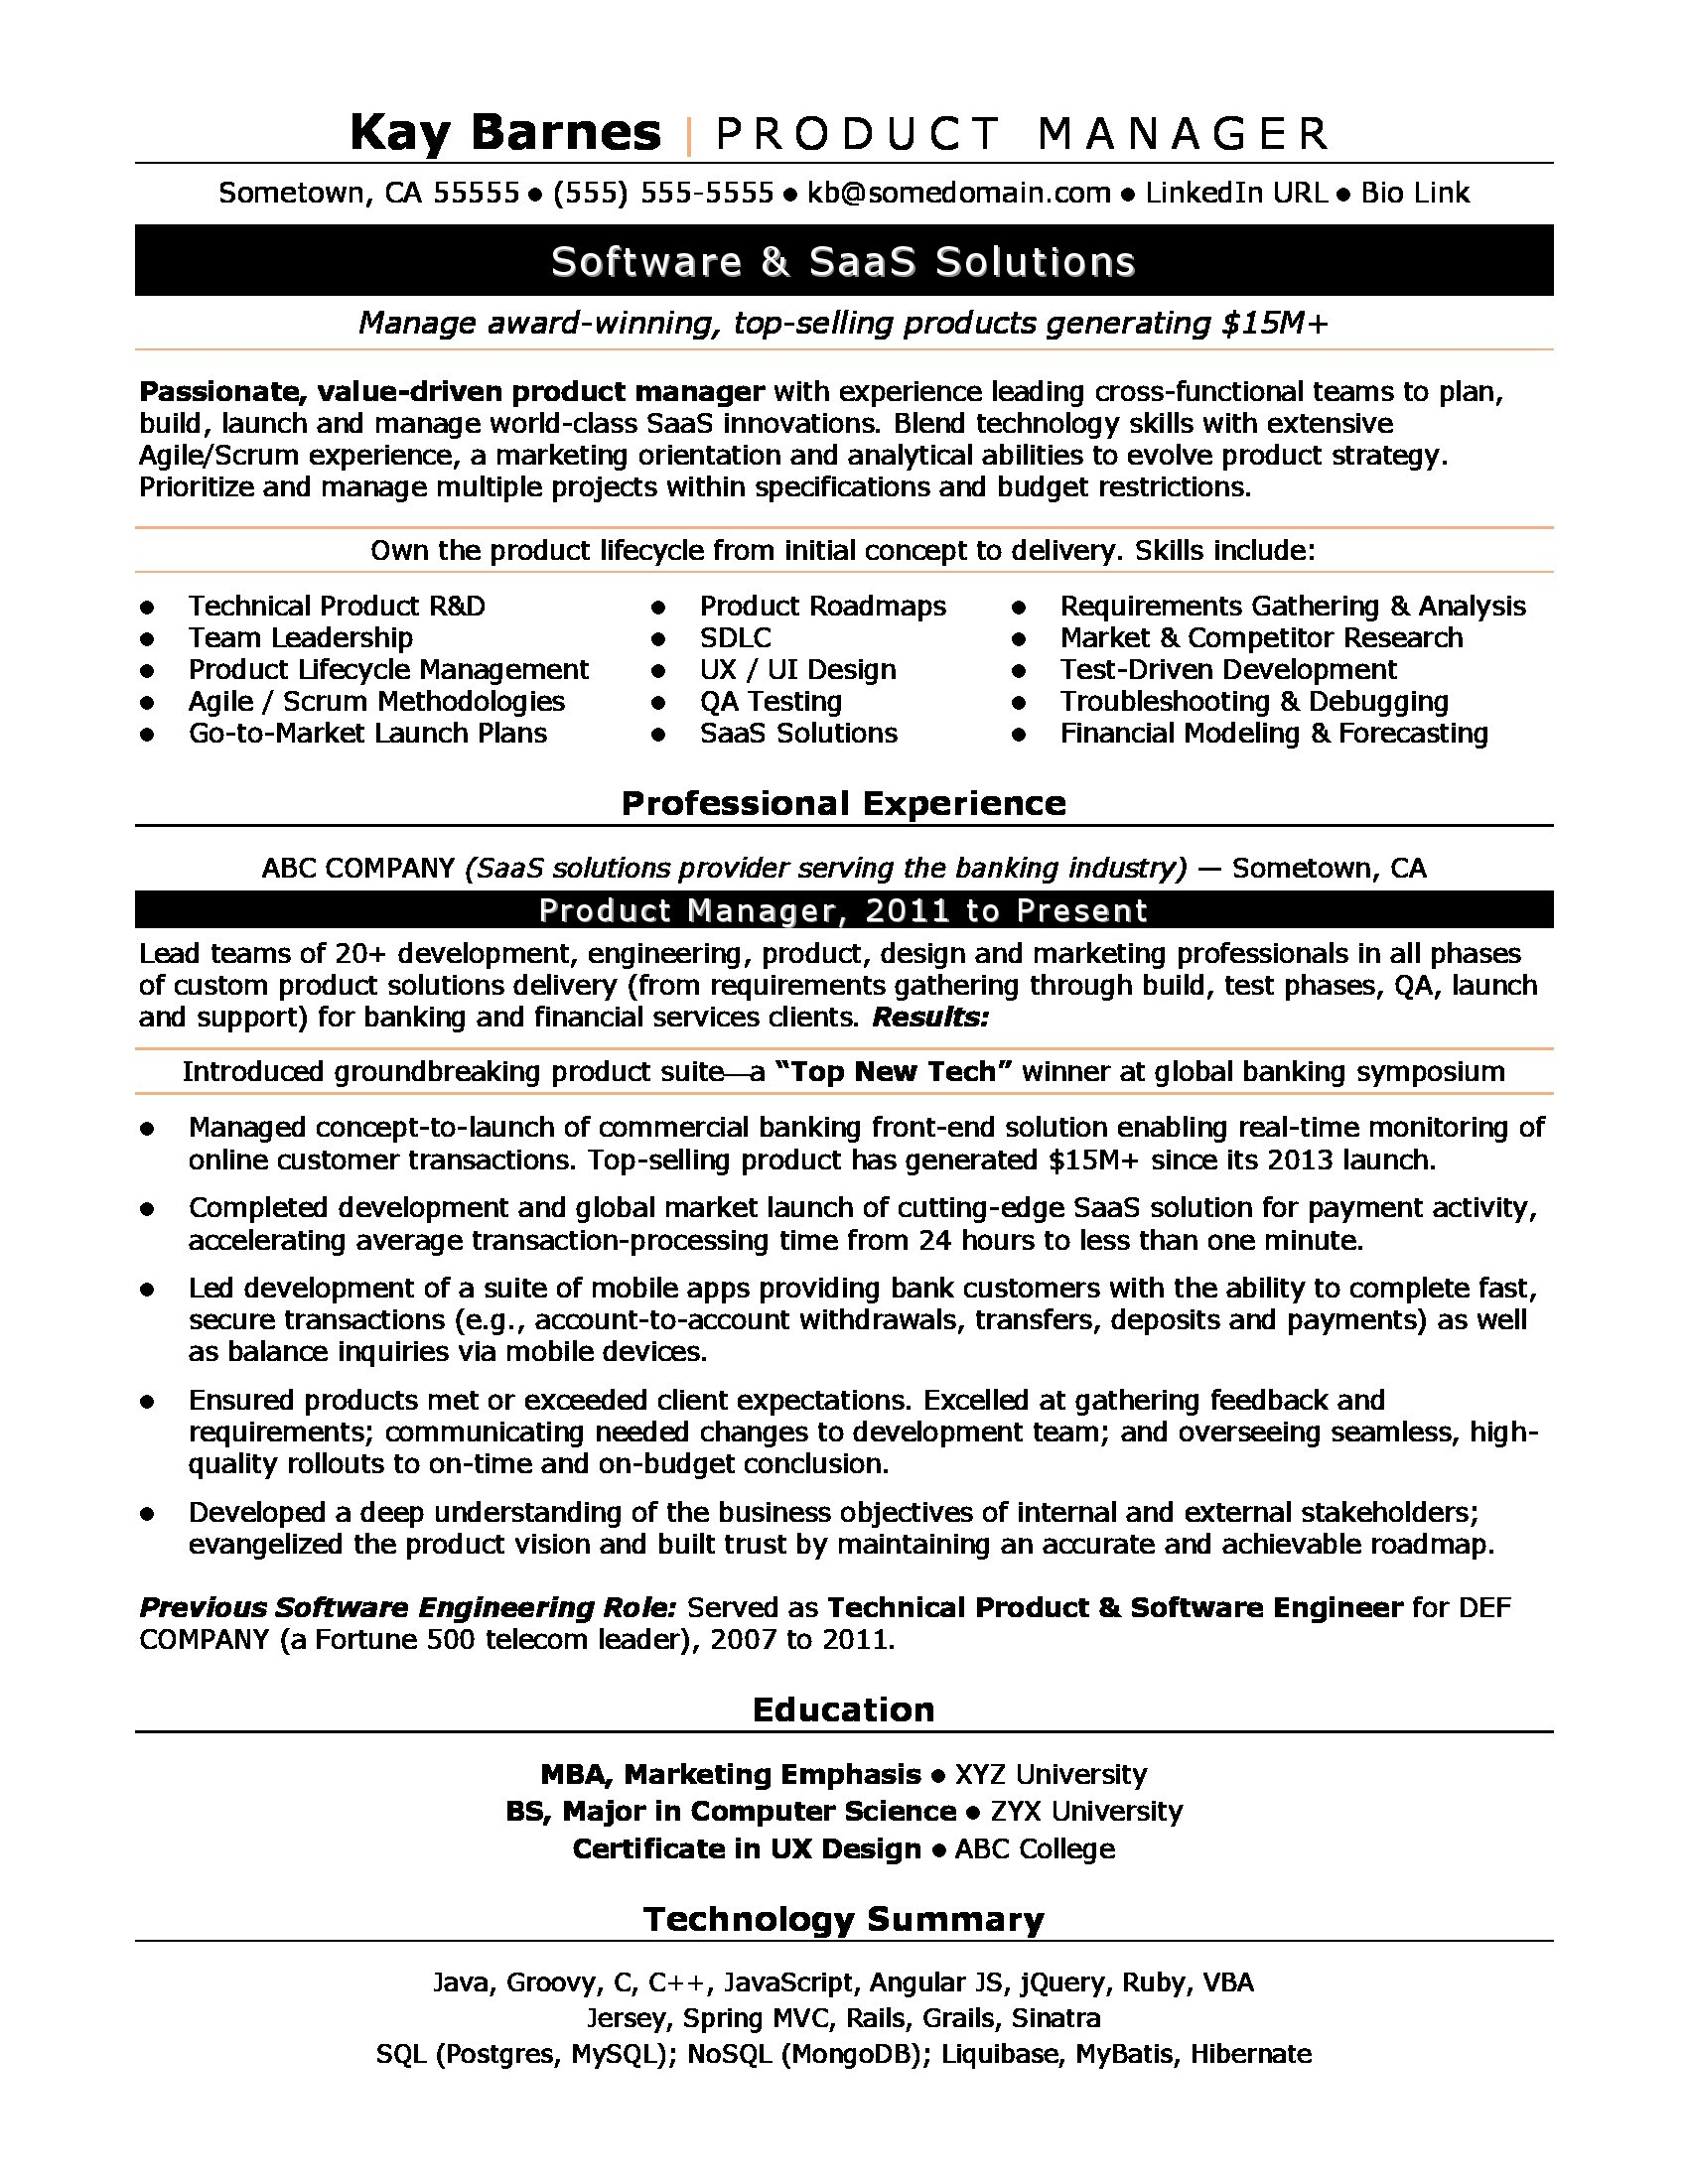 Digital marketing expert resume